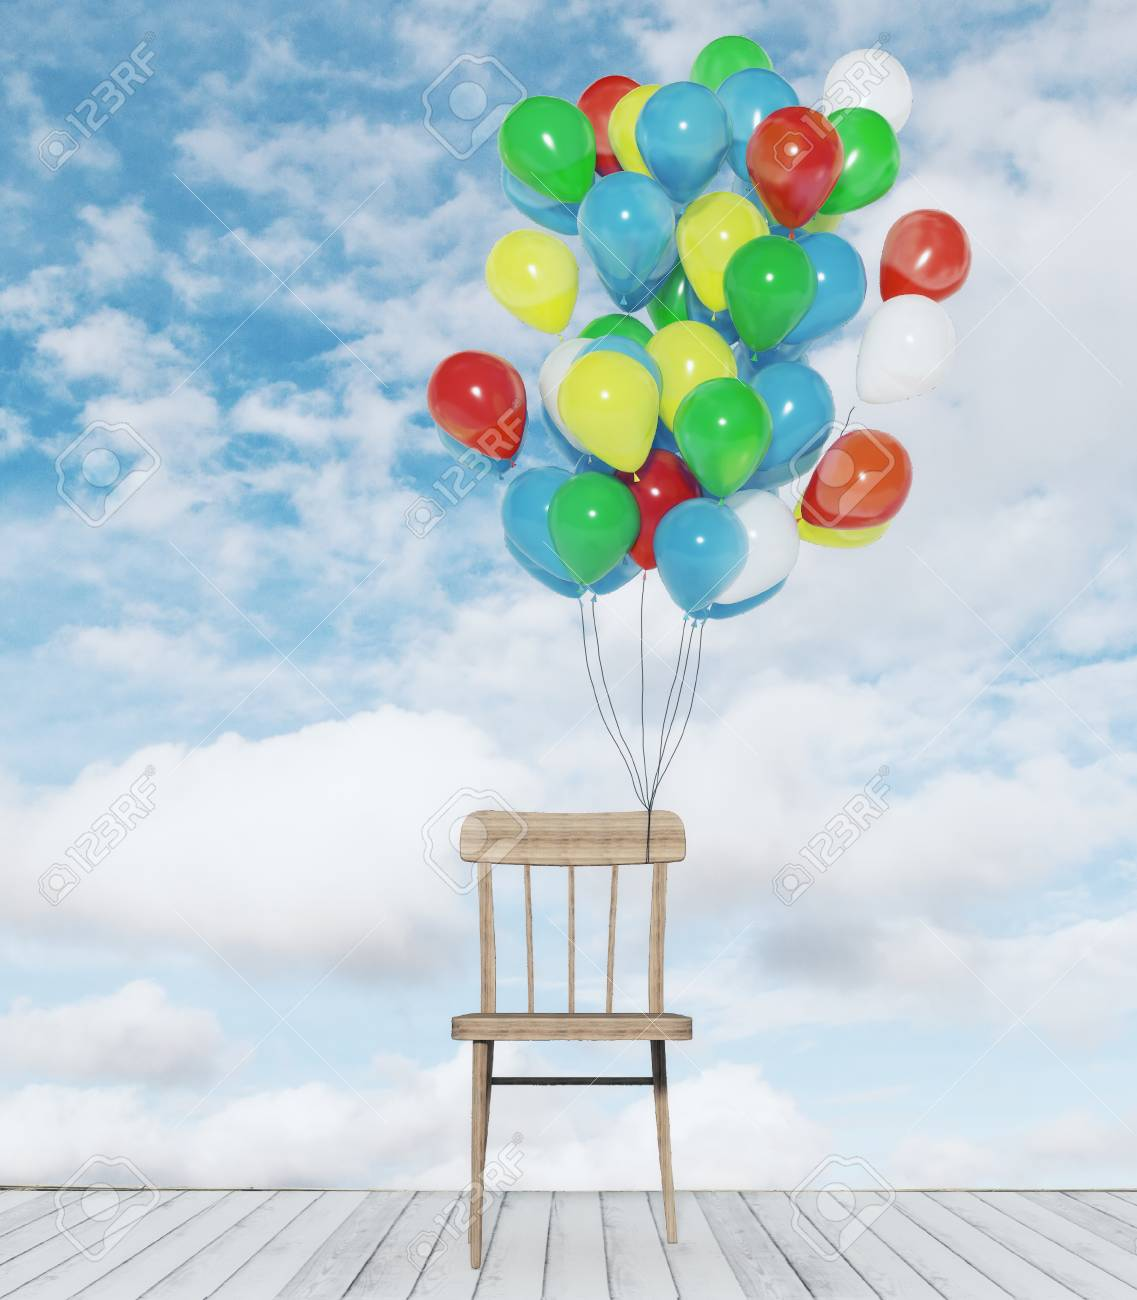 chair with balloons zero g recliner abstract colorful on bright sky clouds background creativity and festive concept